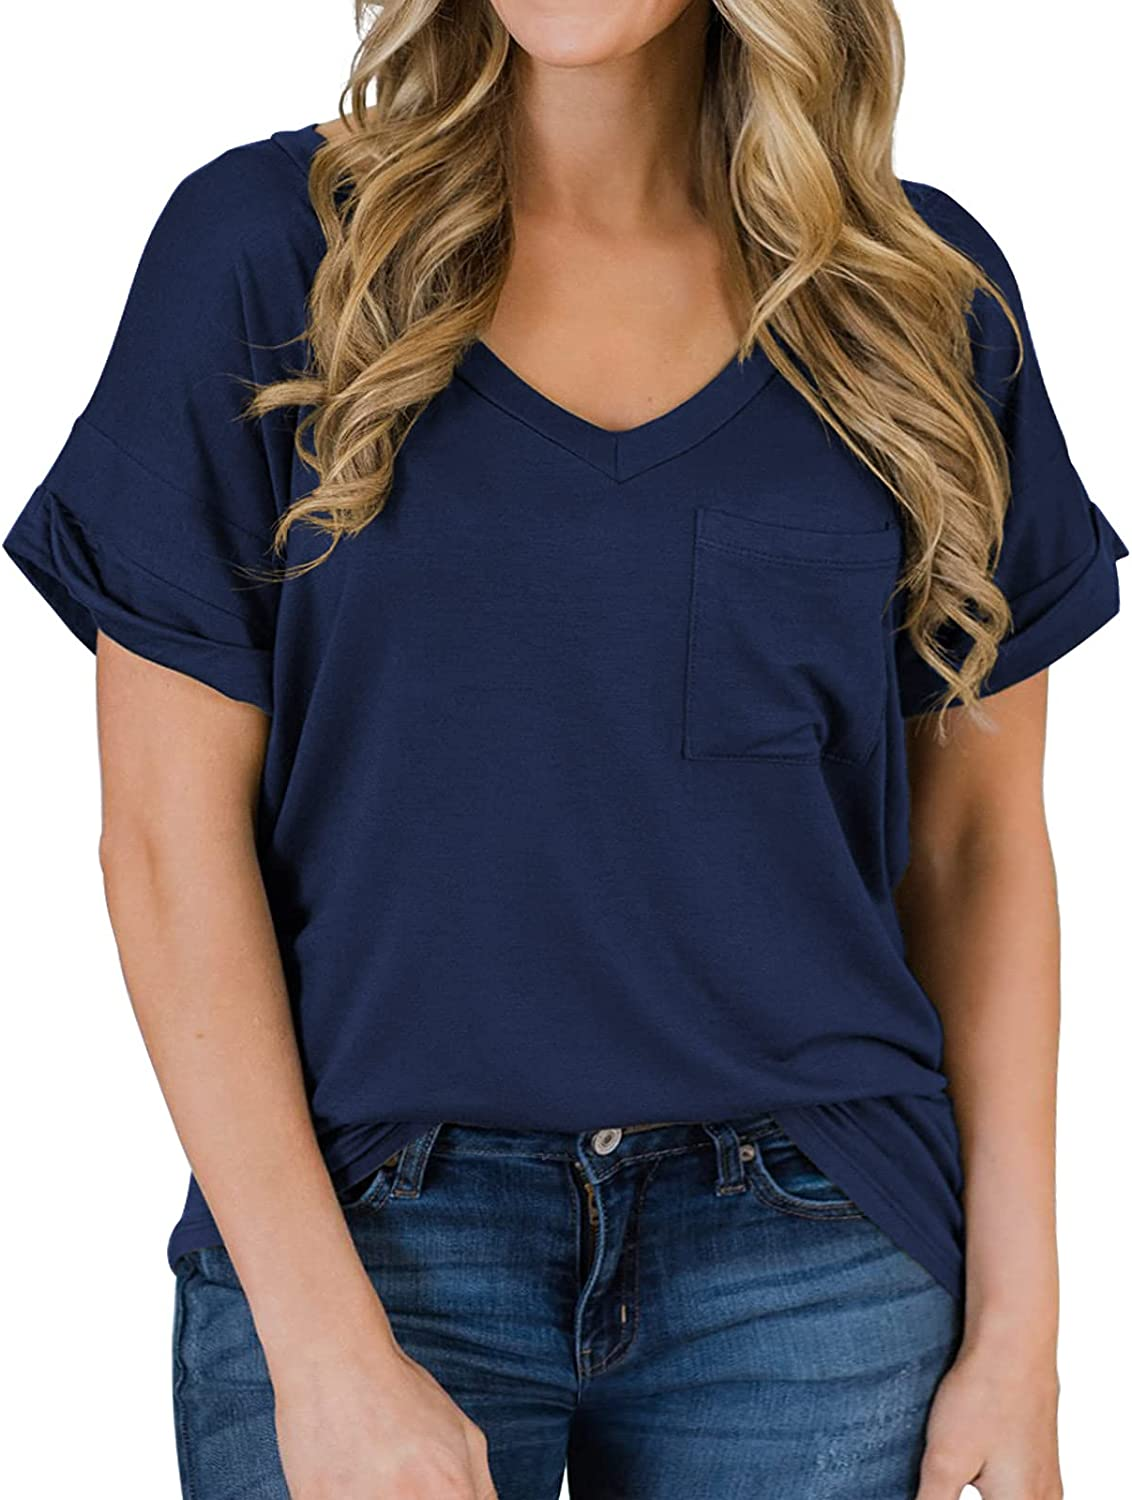 POSESHE specialty shop Women's Plus Size Casual Sleeve Tops Short V-Neck Shirts Lowest price challenge